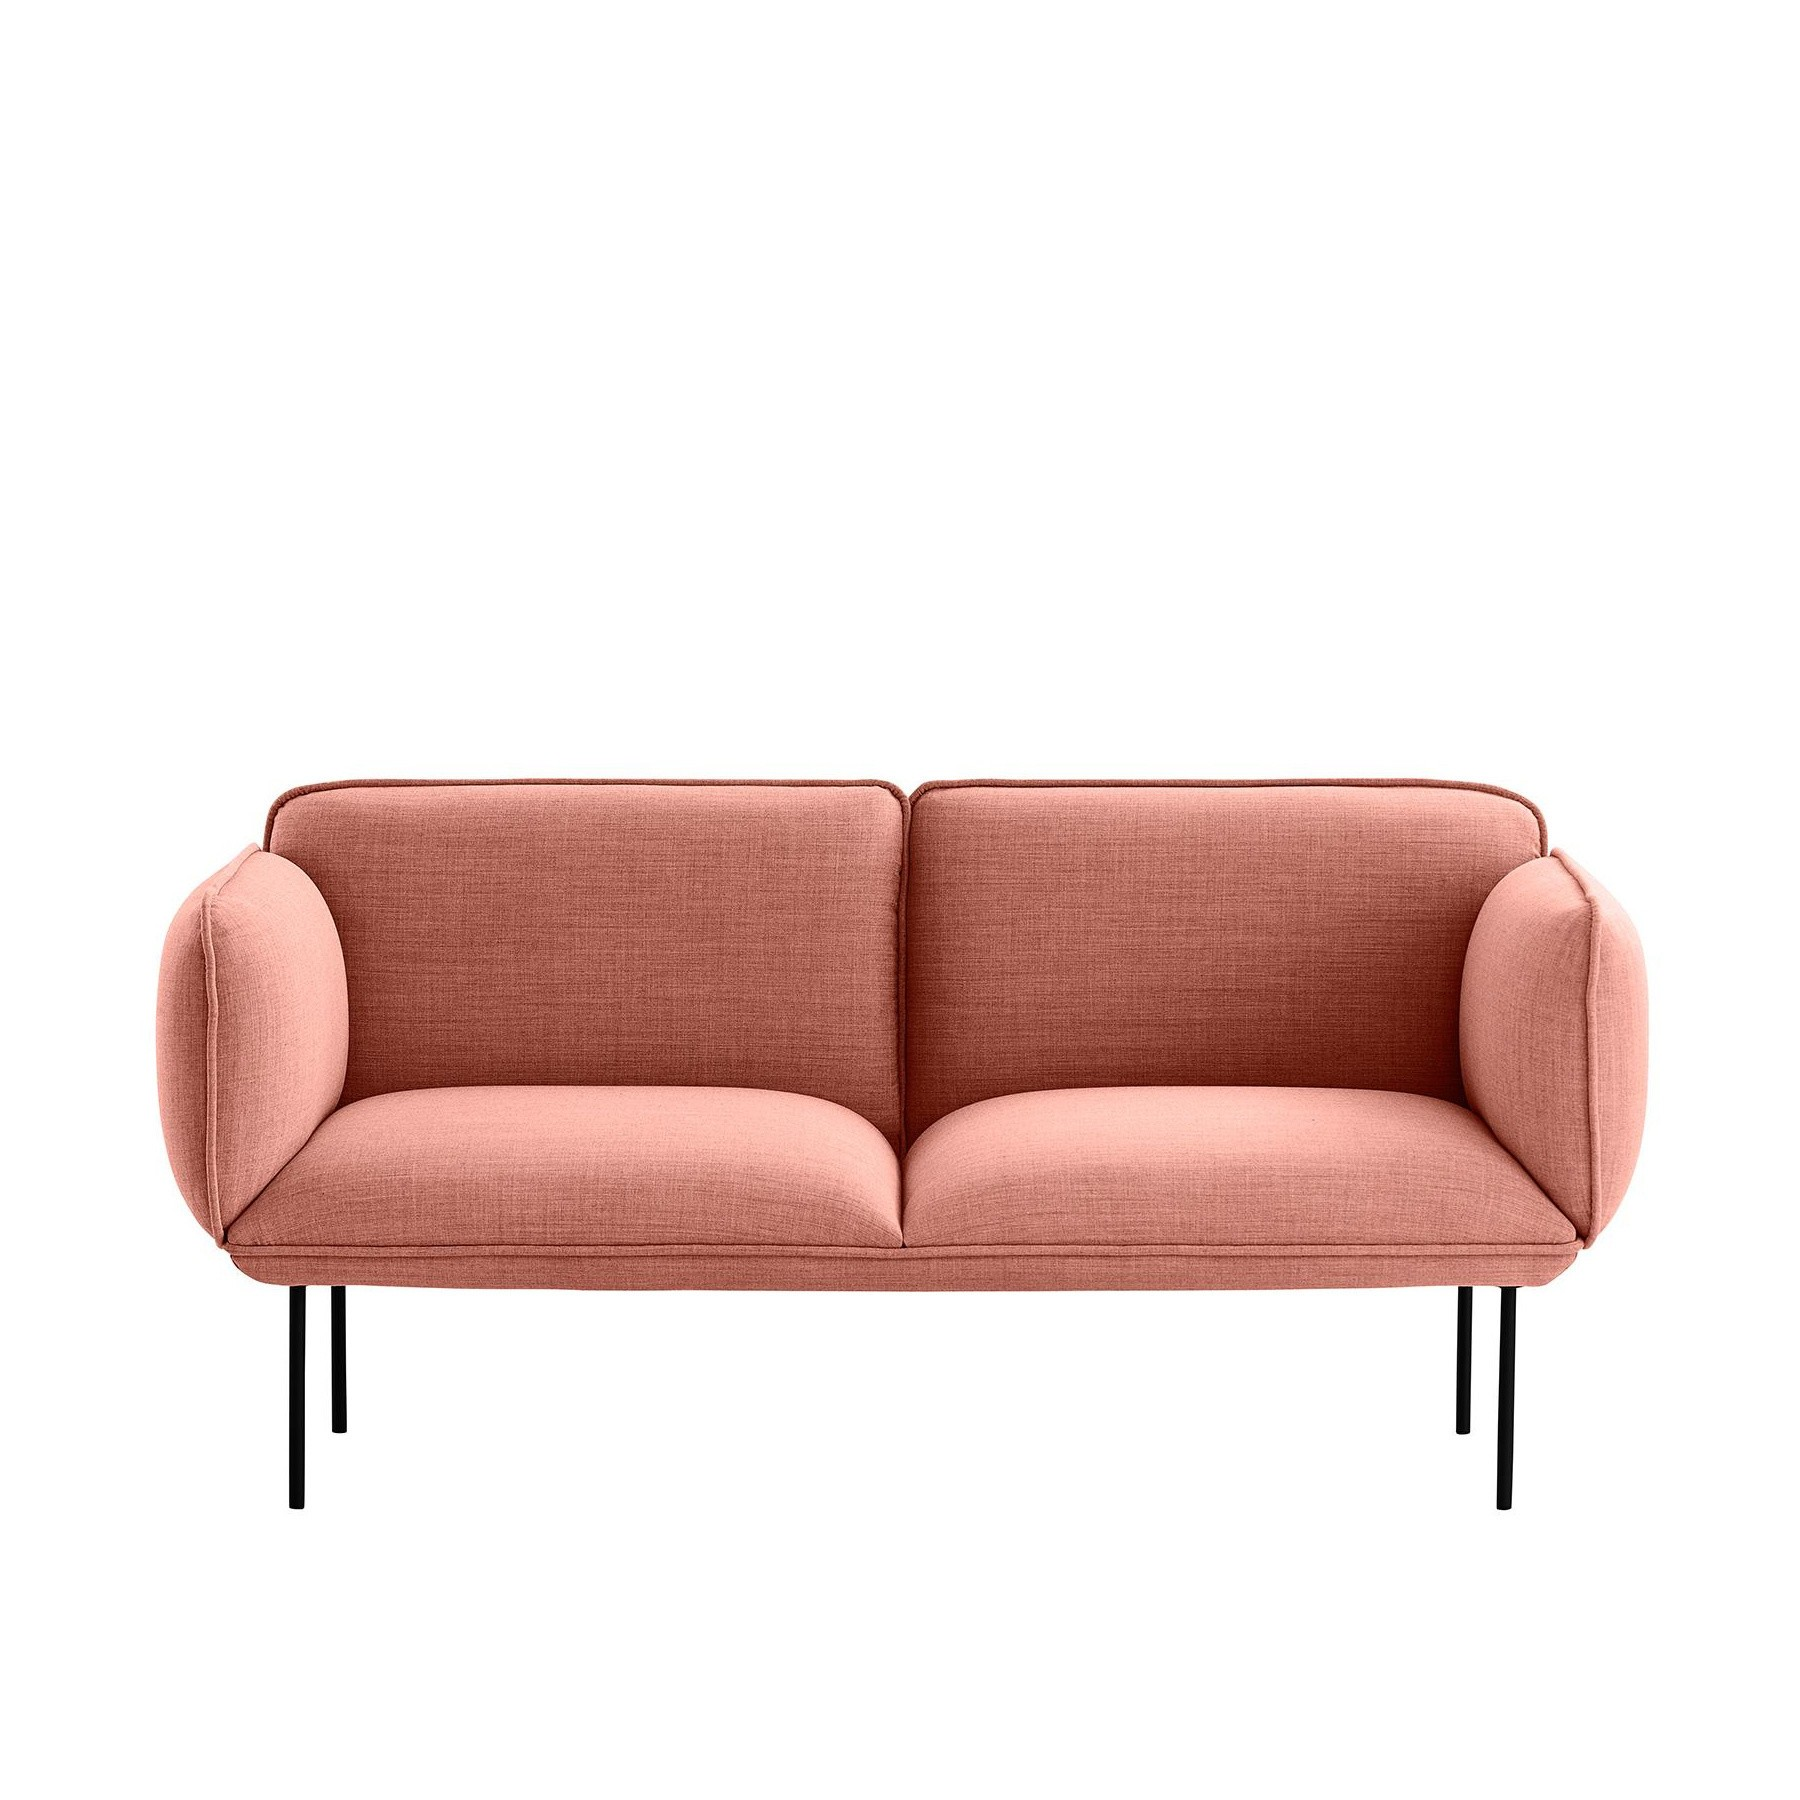 Nakki 2-Seater Fabric Sofa